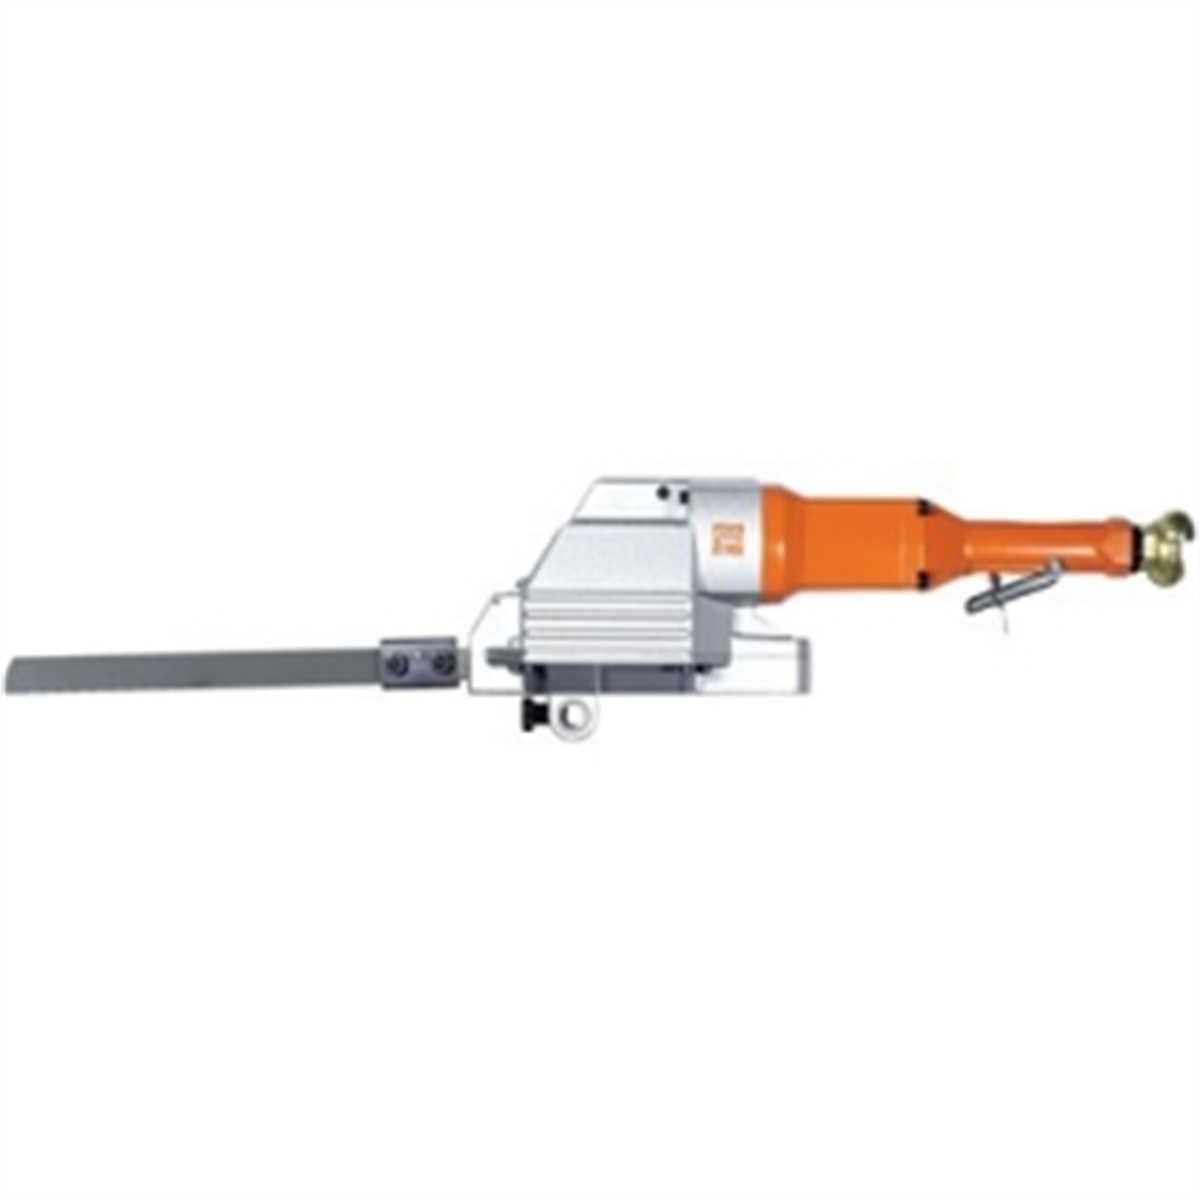 PNEUMATIC HACKSAW 232-STS-325R Package design / cutting equipment sold by Janeice Products Co Inc.